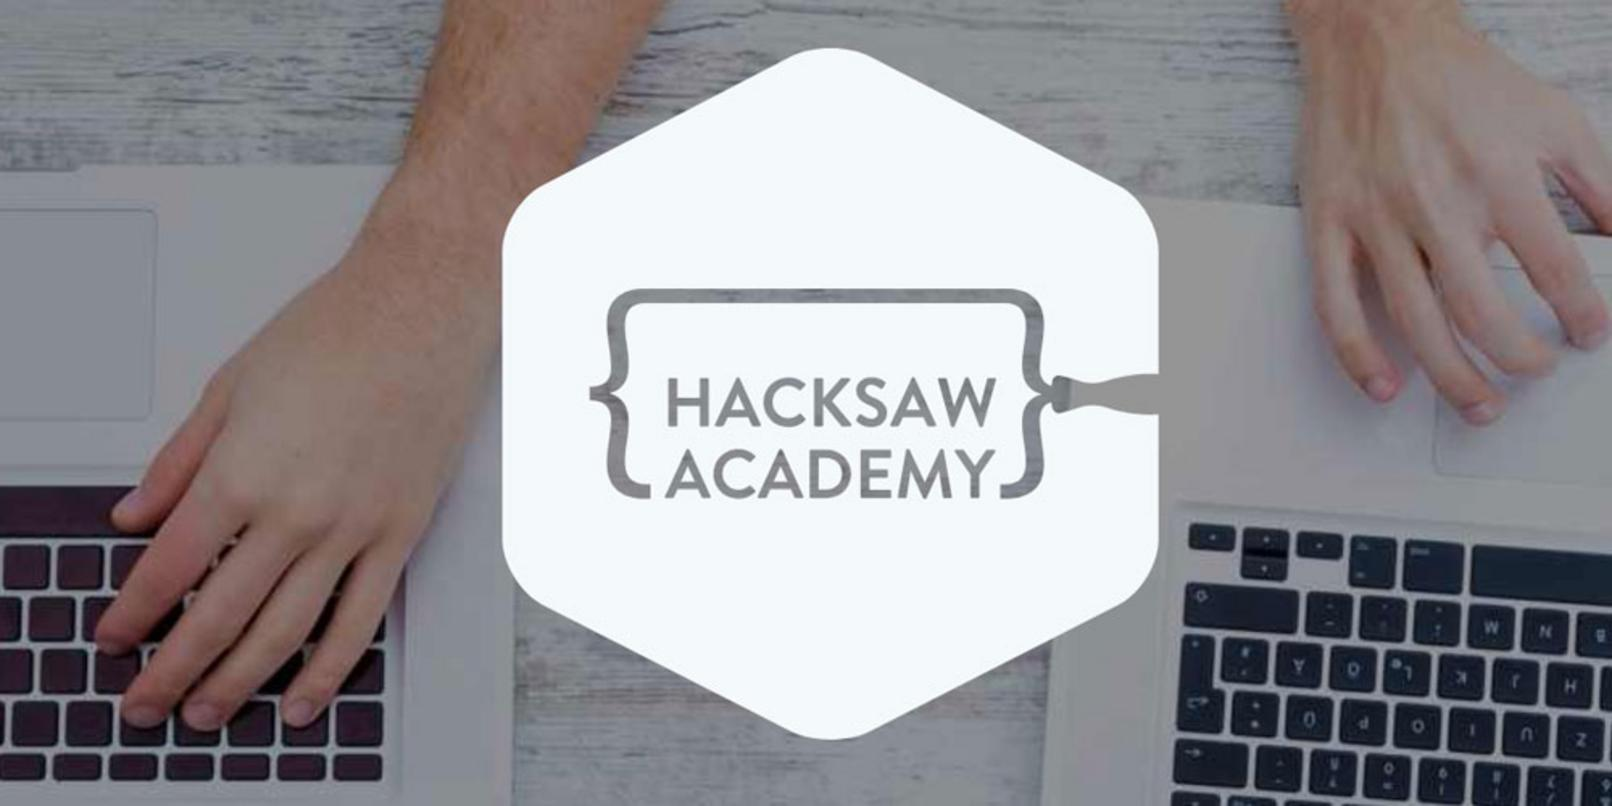 Hacksaw Academy teaches you real programming skills in 30-minute sprints